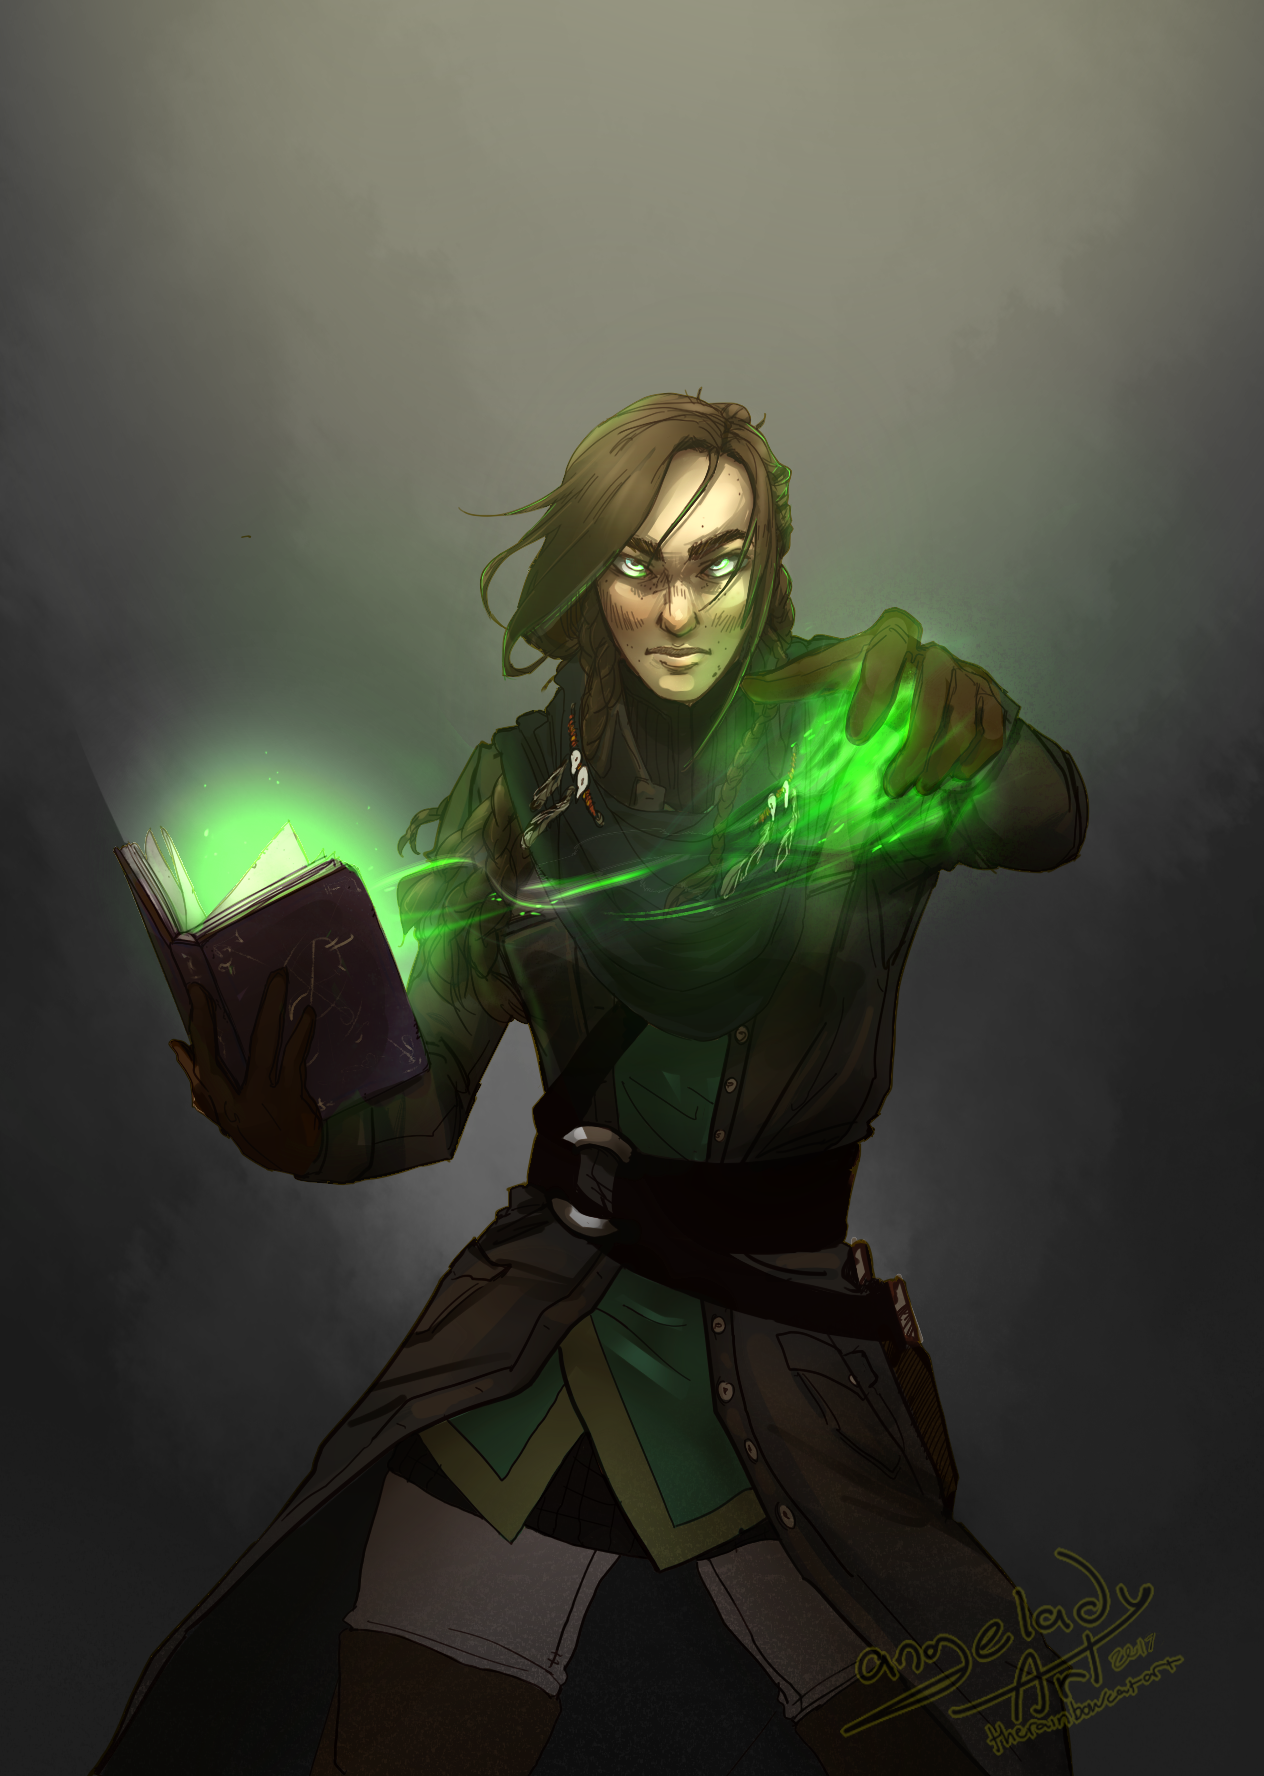 """-""""I am not worried that you die ,because I can always bring you back."""" My dnd character, Karina beign cool instead of being an awkward nerd she usually is. SHe can be a pretty cool necromancer time to..."""